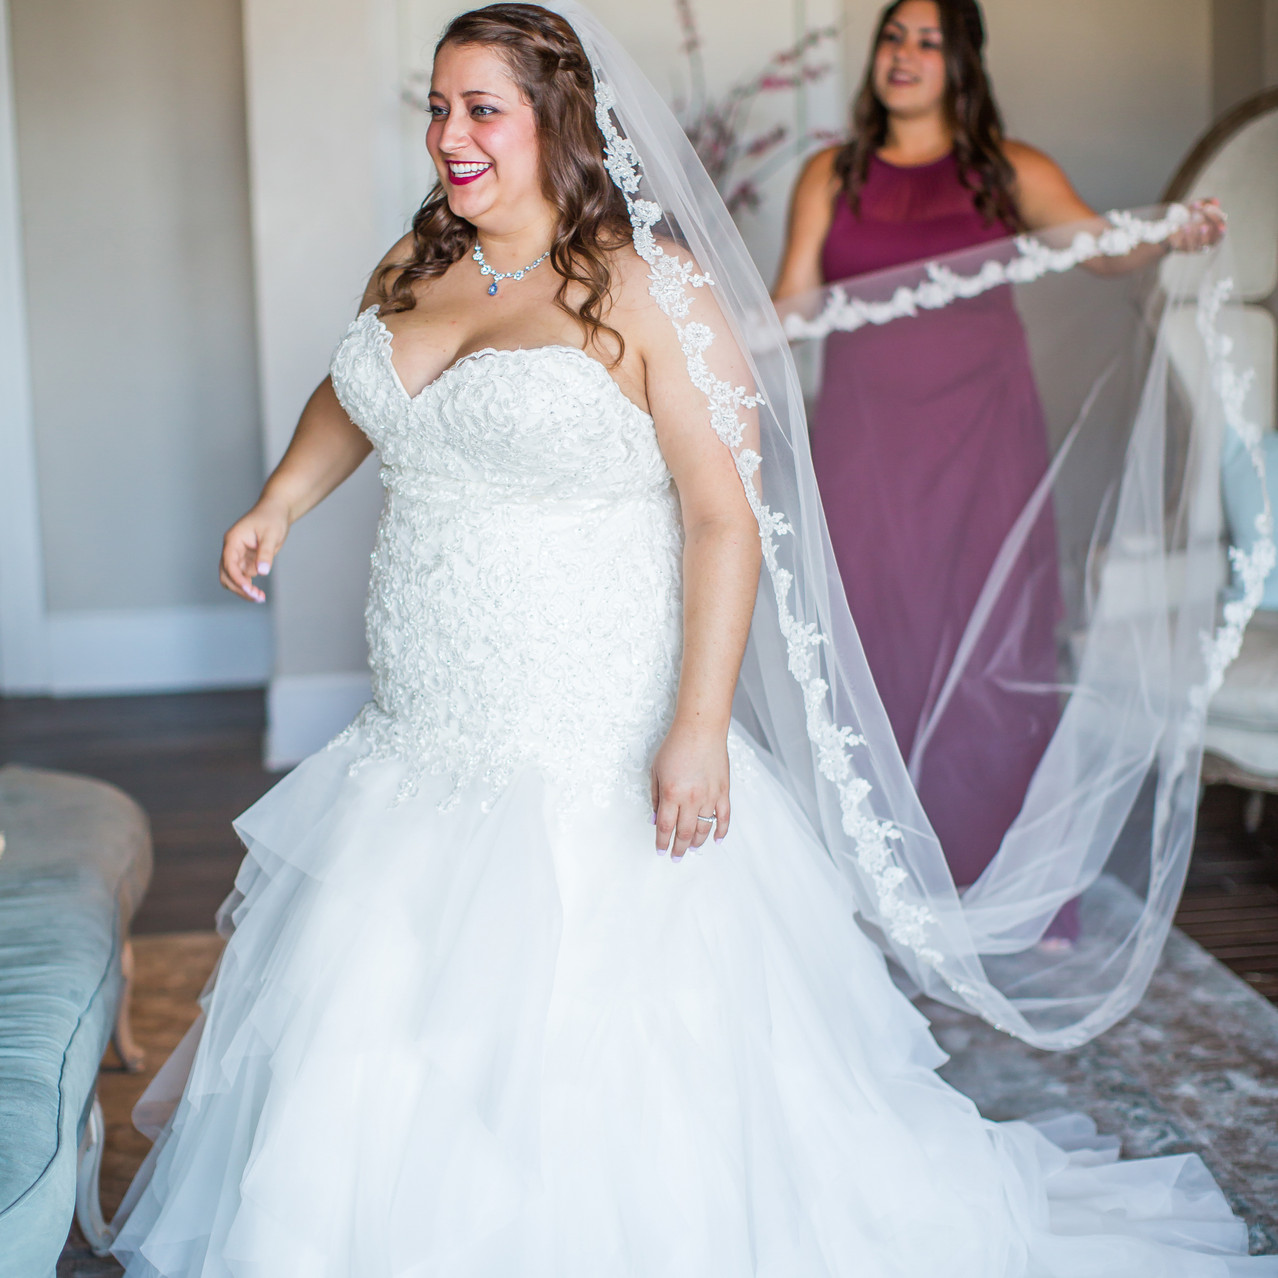 7-8-2018_Brittany + Eric-GR-143